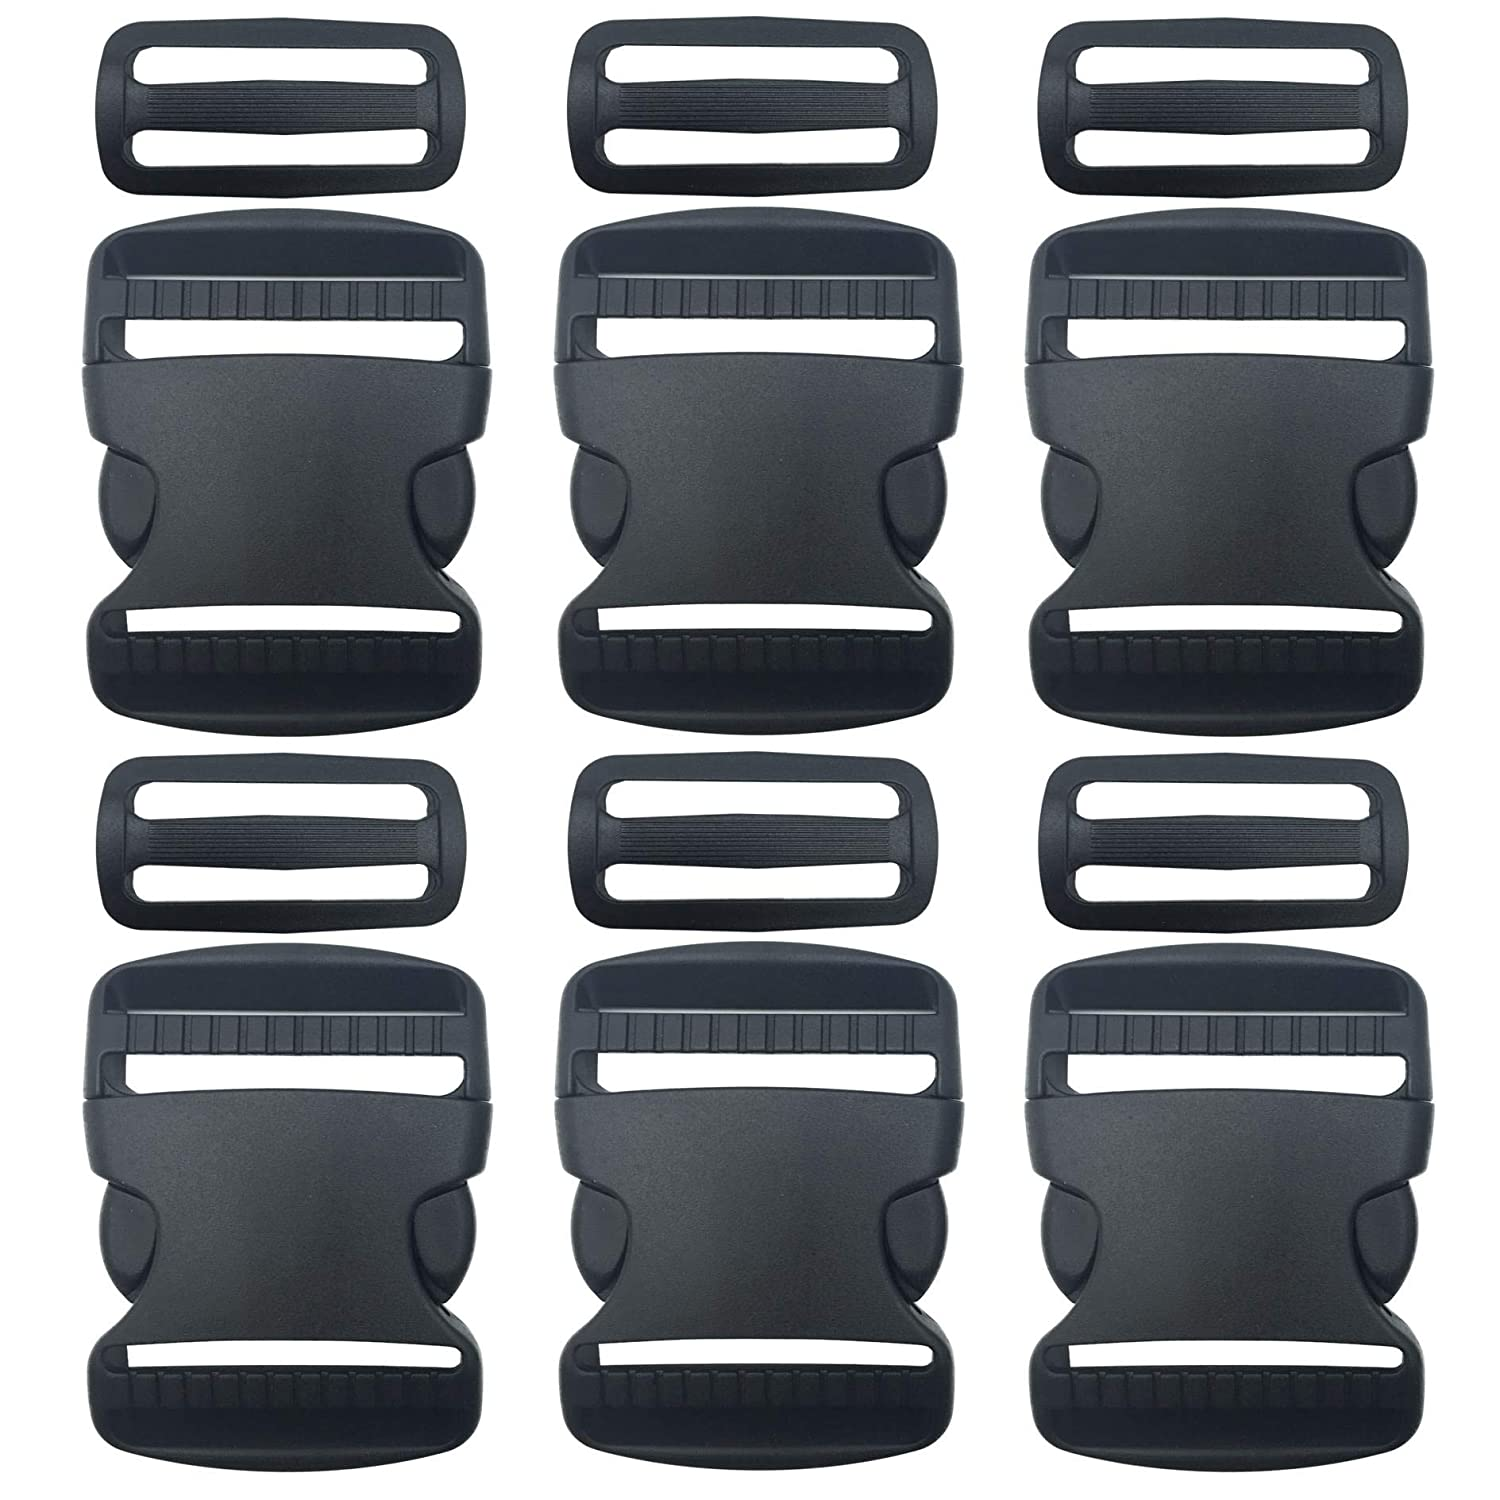 Black 10 Set 1 Inch Flat Dual Adjustable Plastic Side Release Plastic Buckles and Tri-Glide Slides Quick Side Release Buckle for Luggage Straps Pet Collar Backpack Repairing